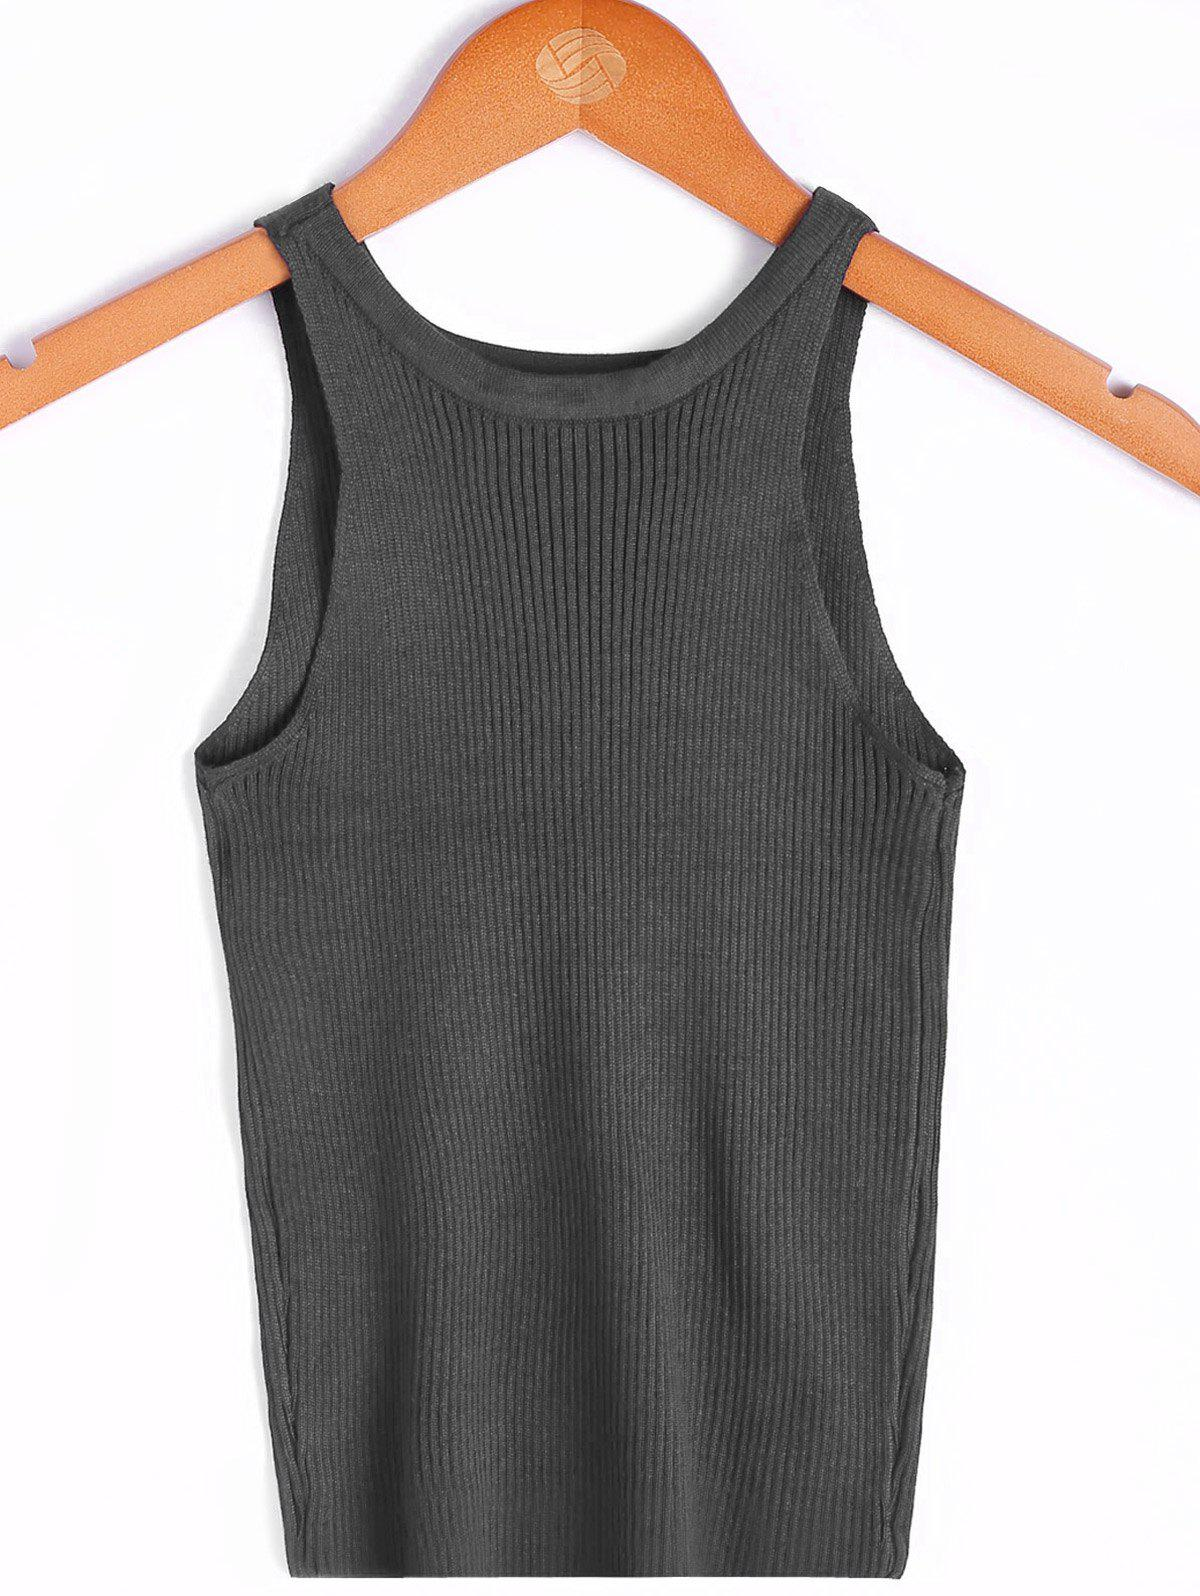 Simple Women's Scoop Neck Sleeveless Solid Color Top - GRAY ONE SIZE(FIT SIZE XS TO M)